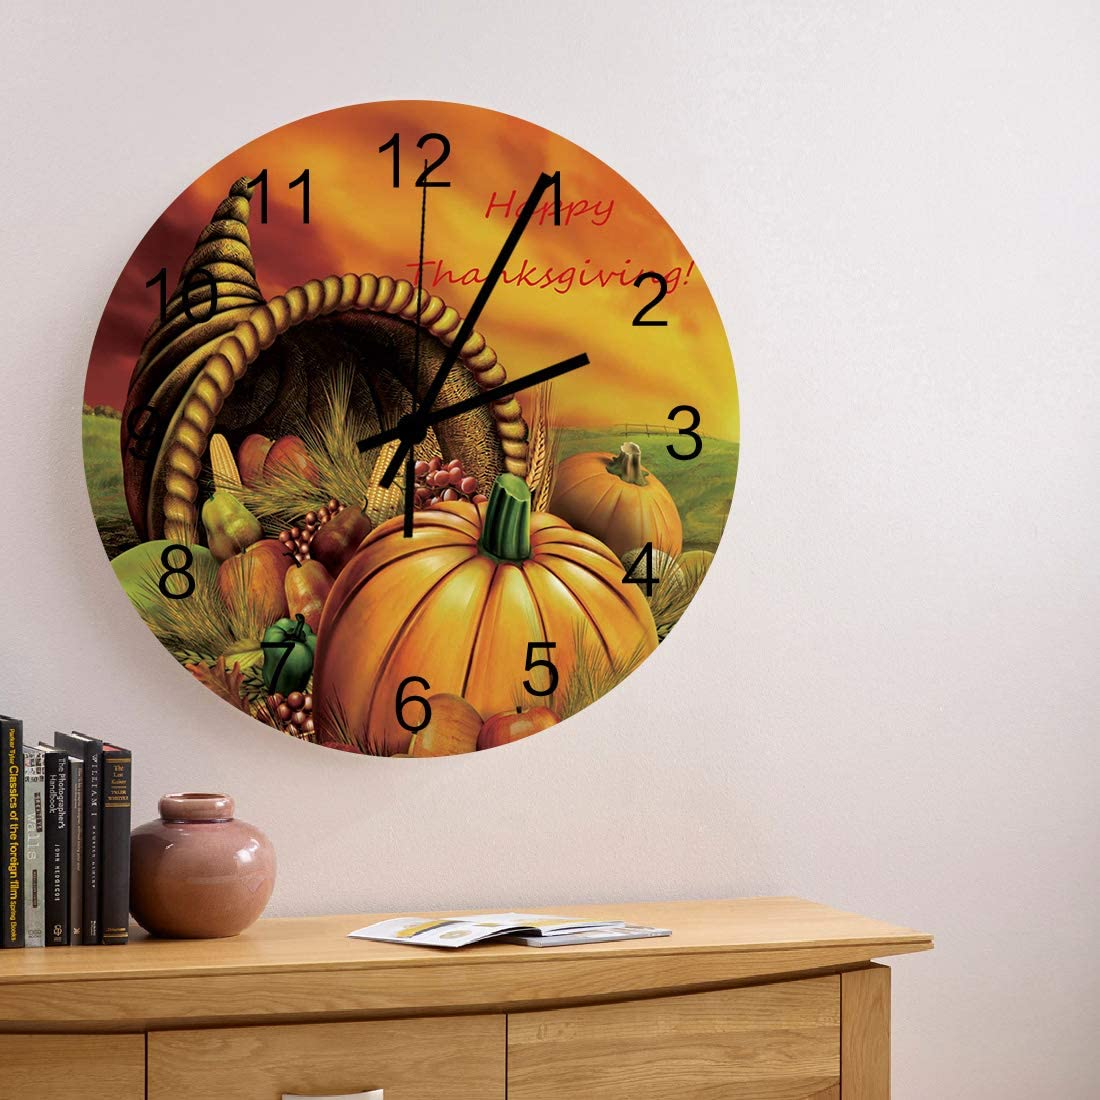 12 Inch Silent Non-Ticking Wall Clock Thanksgiving Theme with Foods Pattern Battery Operated Round Wooden Wall Clock Roman Numeral Clock Wall Decor Home Decor